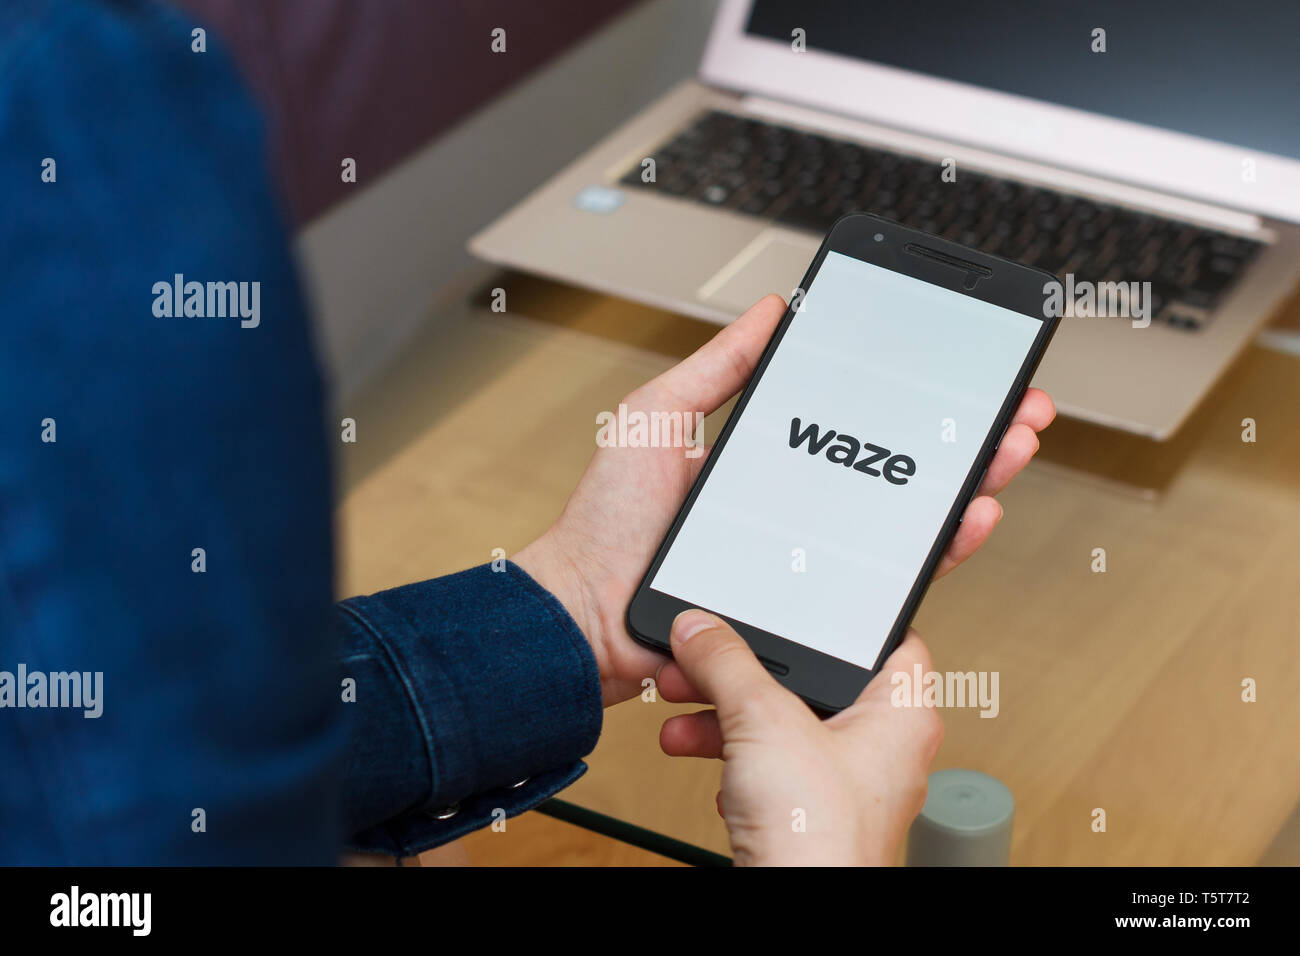 Waze Stock Photos & Waze Stock Images - Alamy